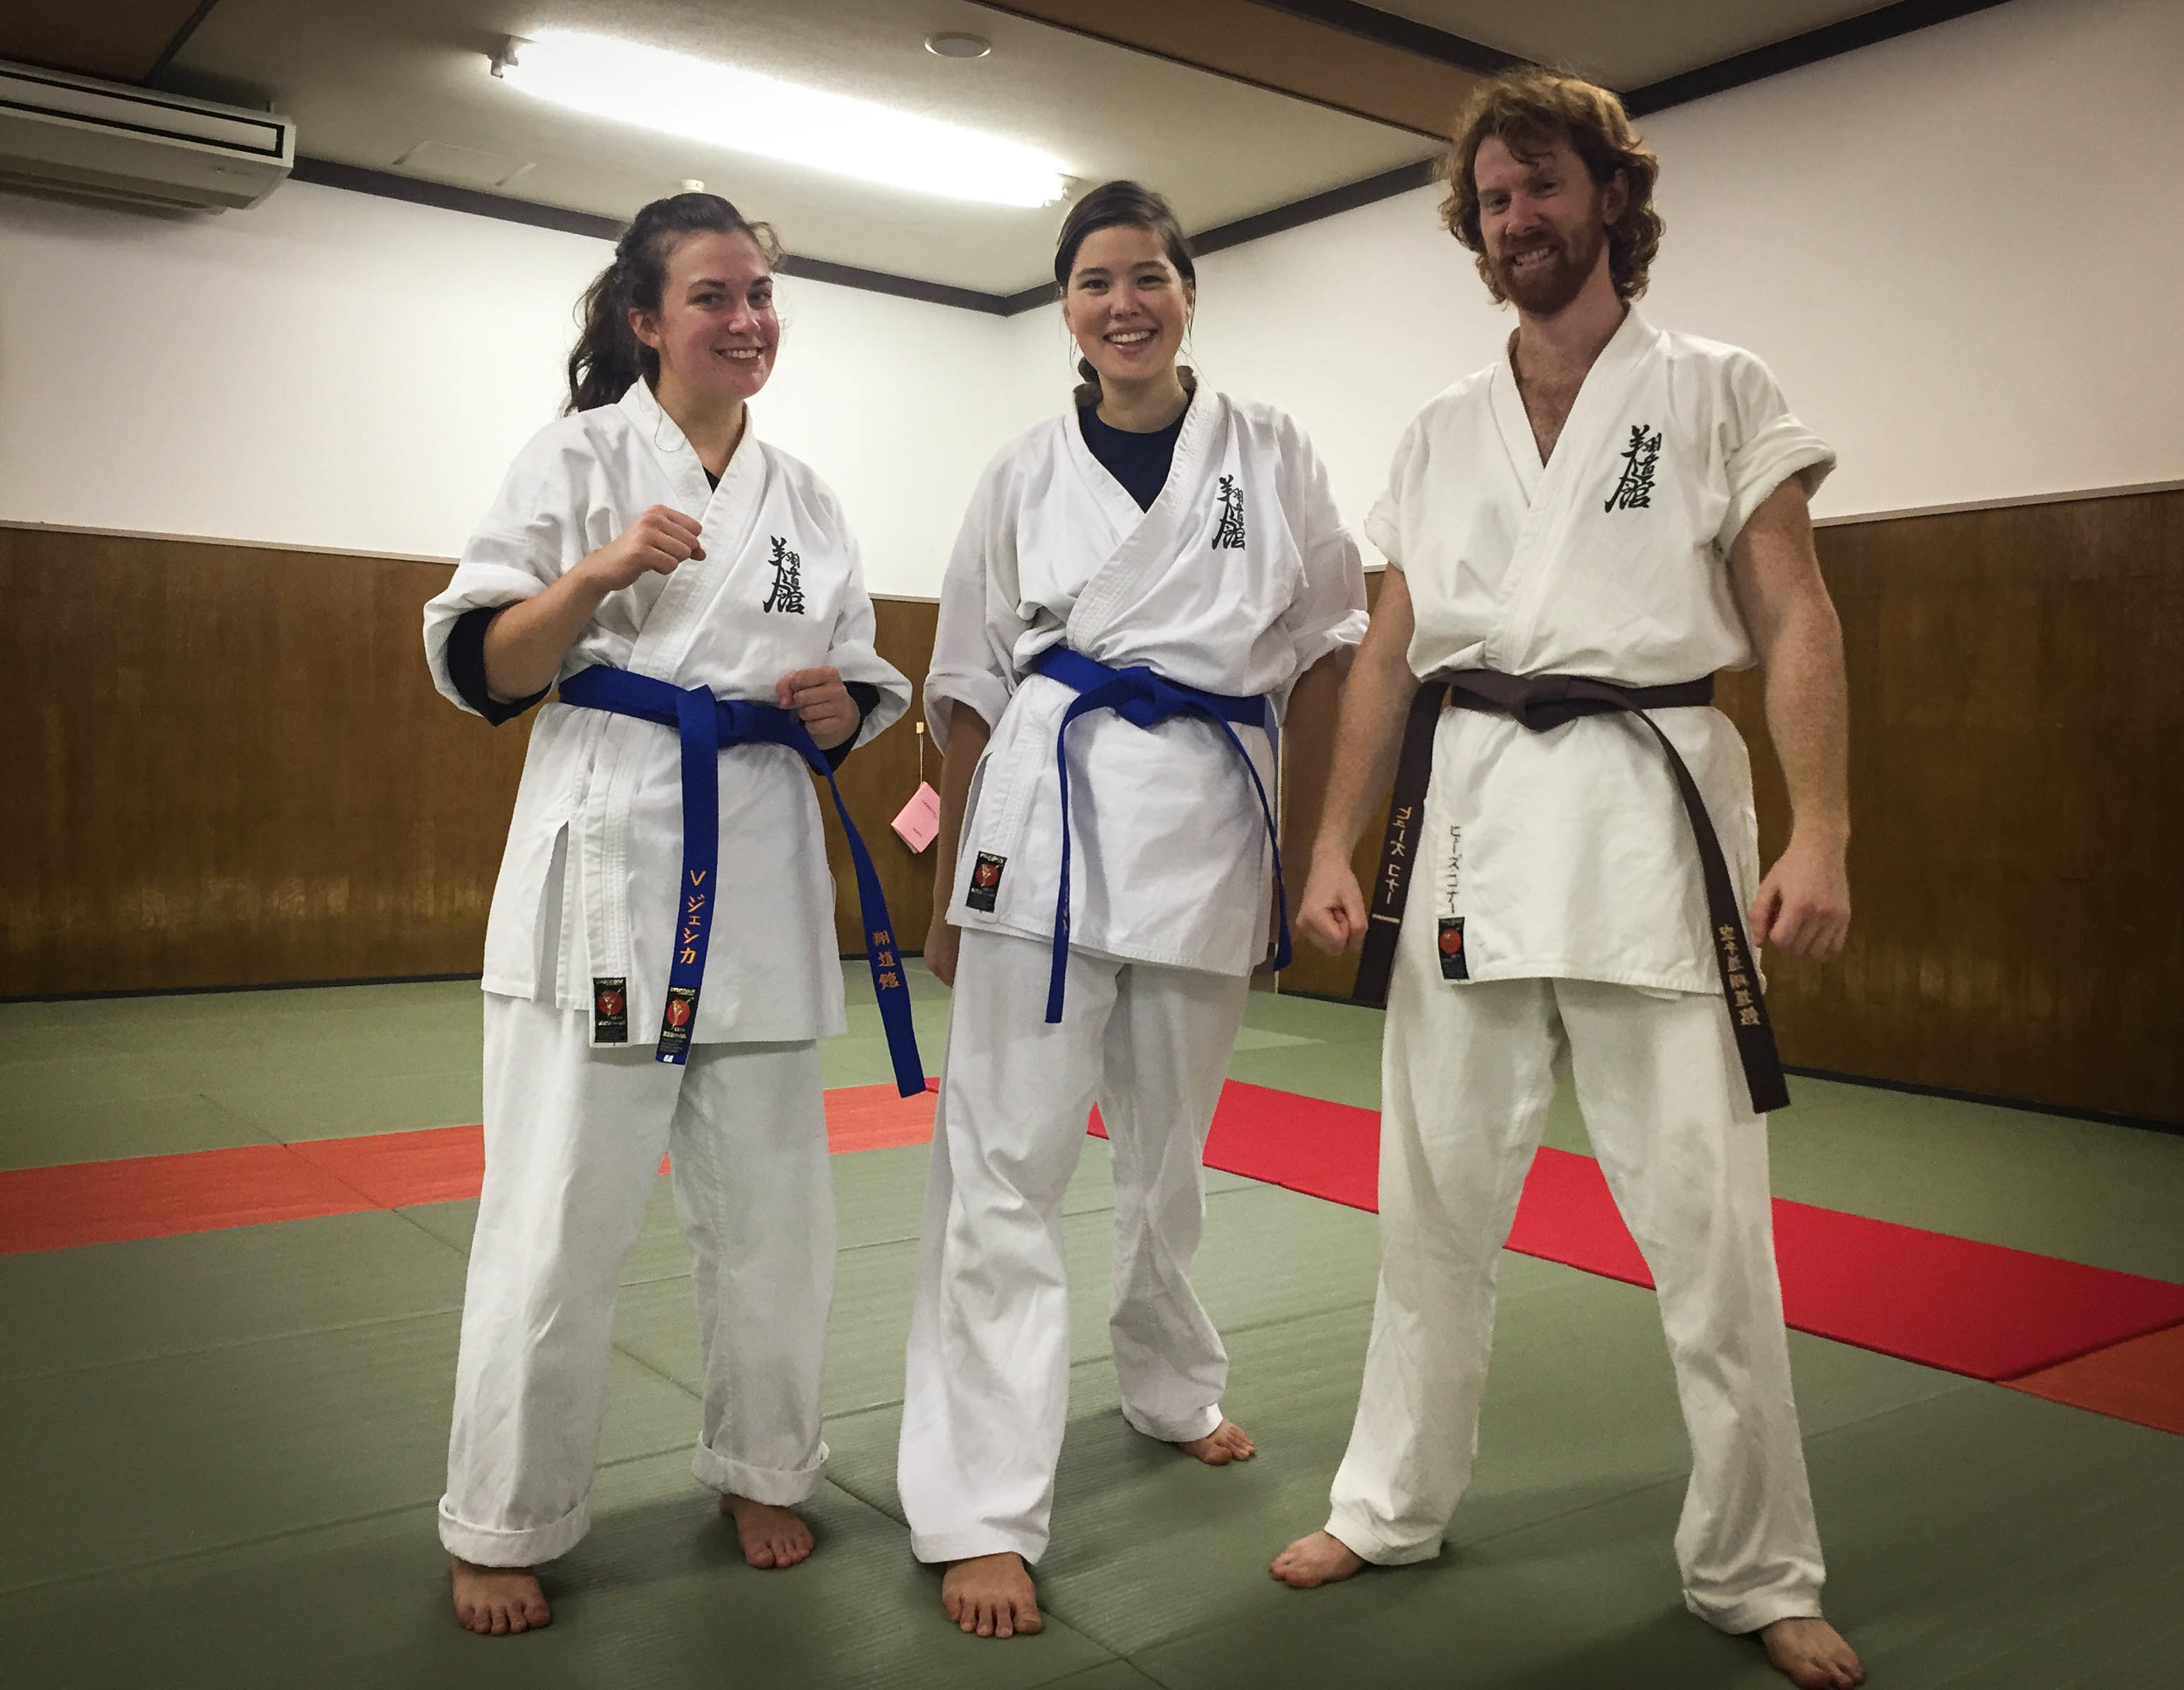 Our first coloured belt-- blue! But more importantly, where did my left arm go??